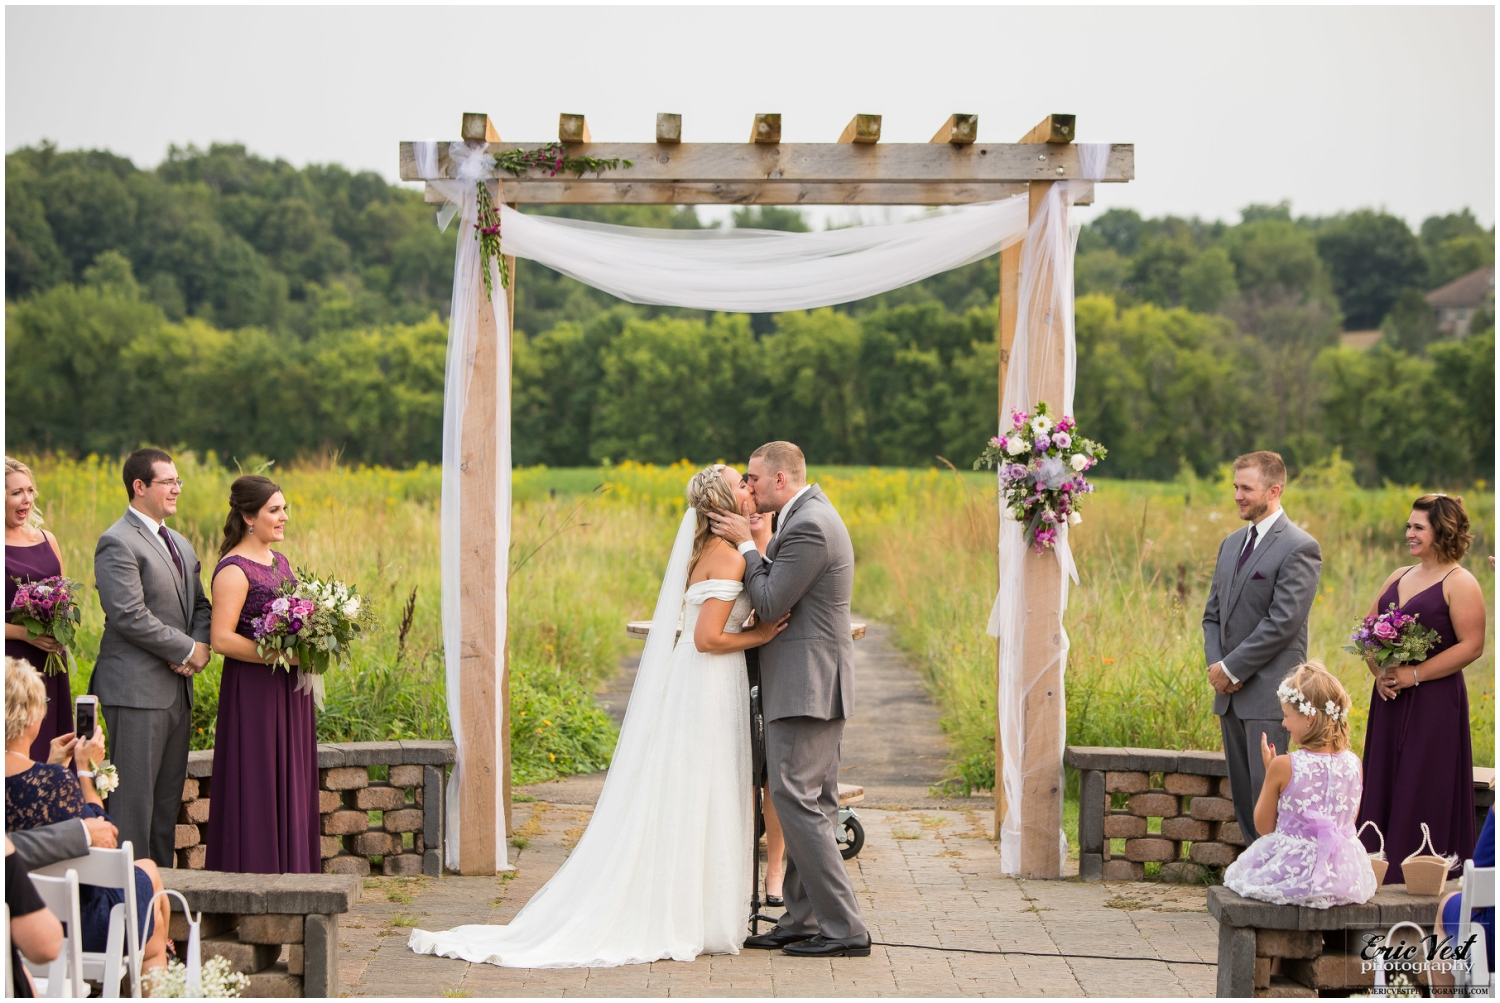 Chaska MN wedding ceremony